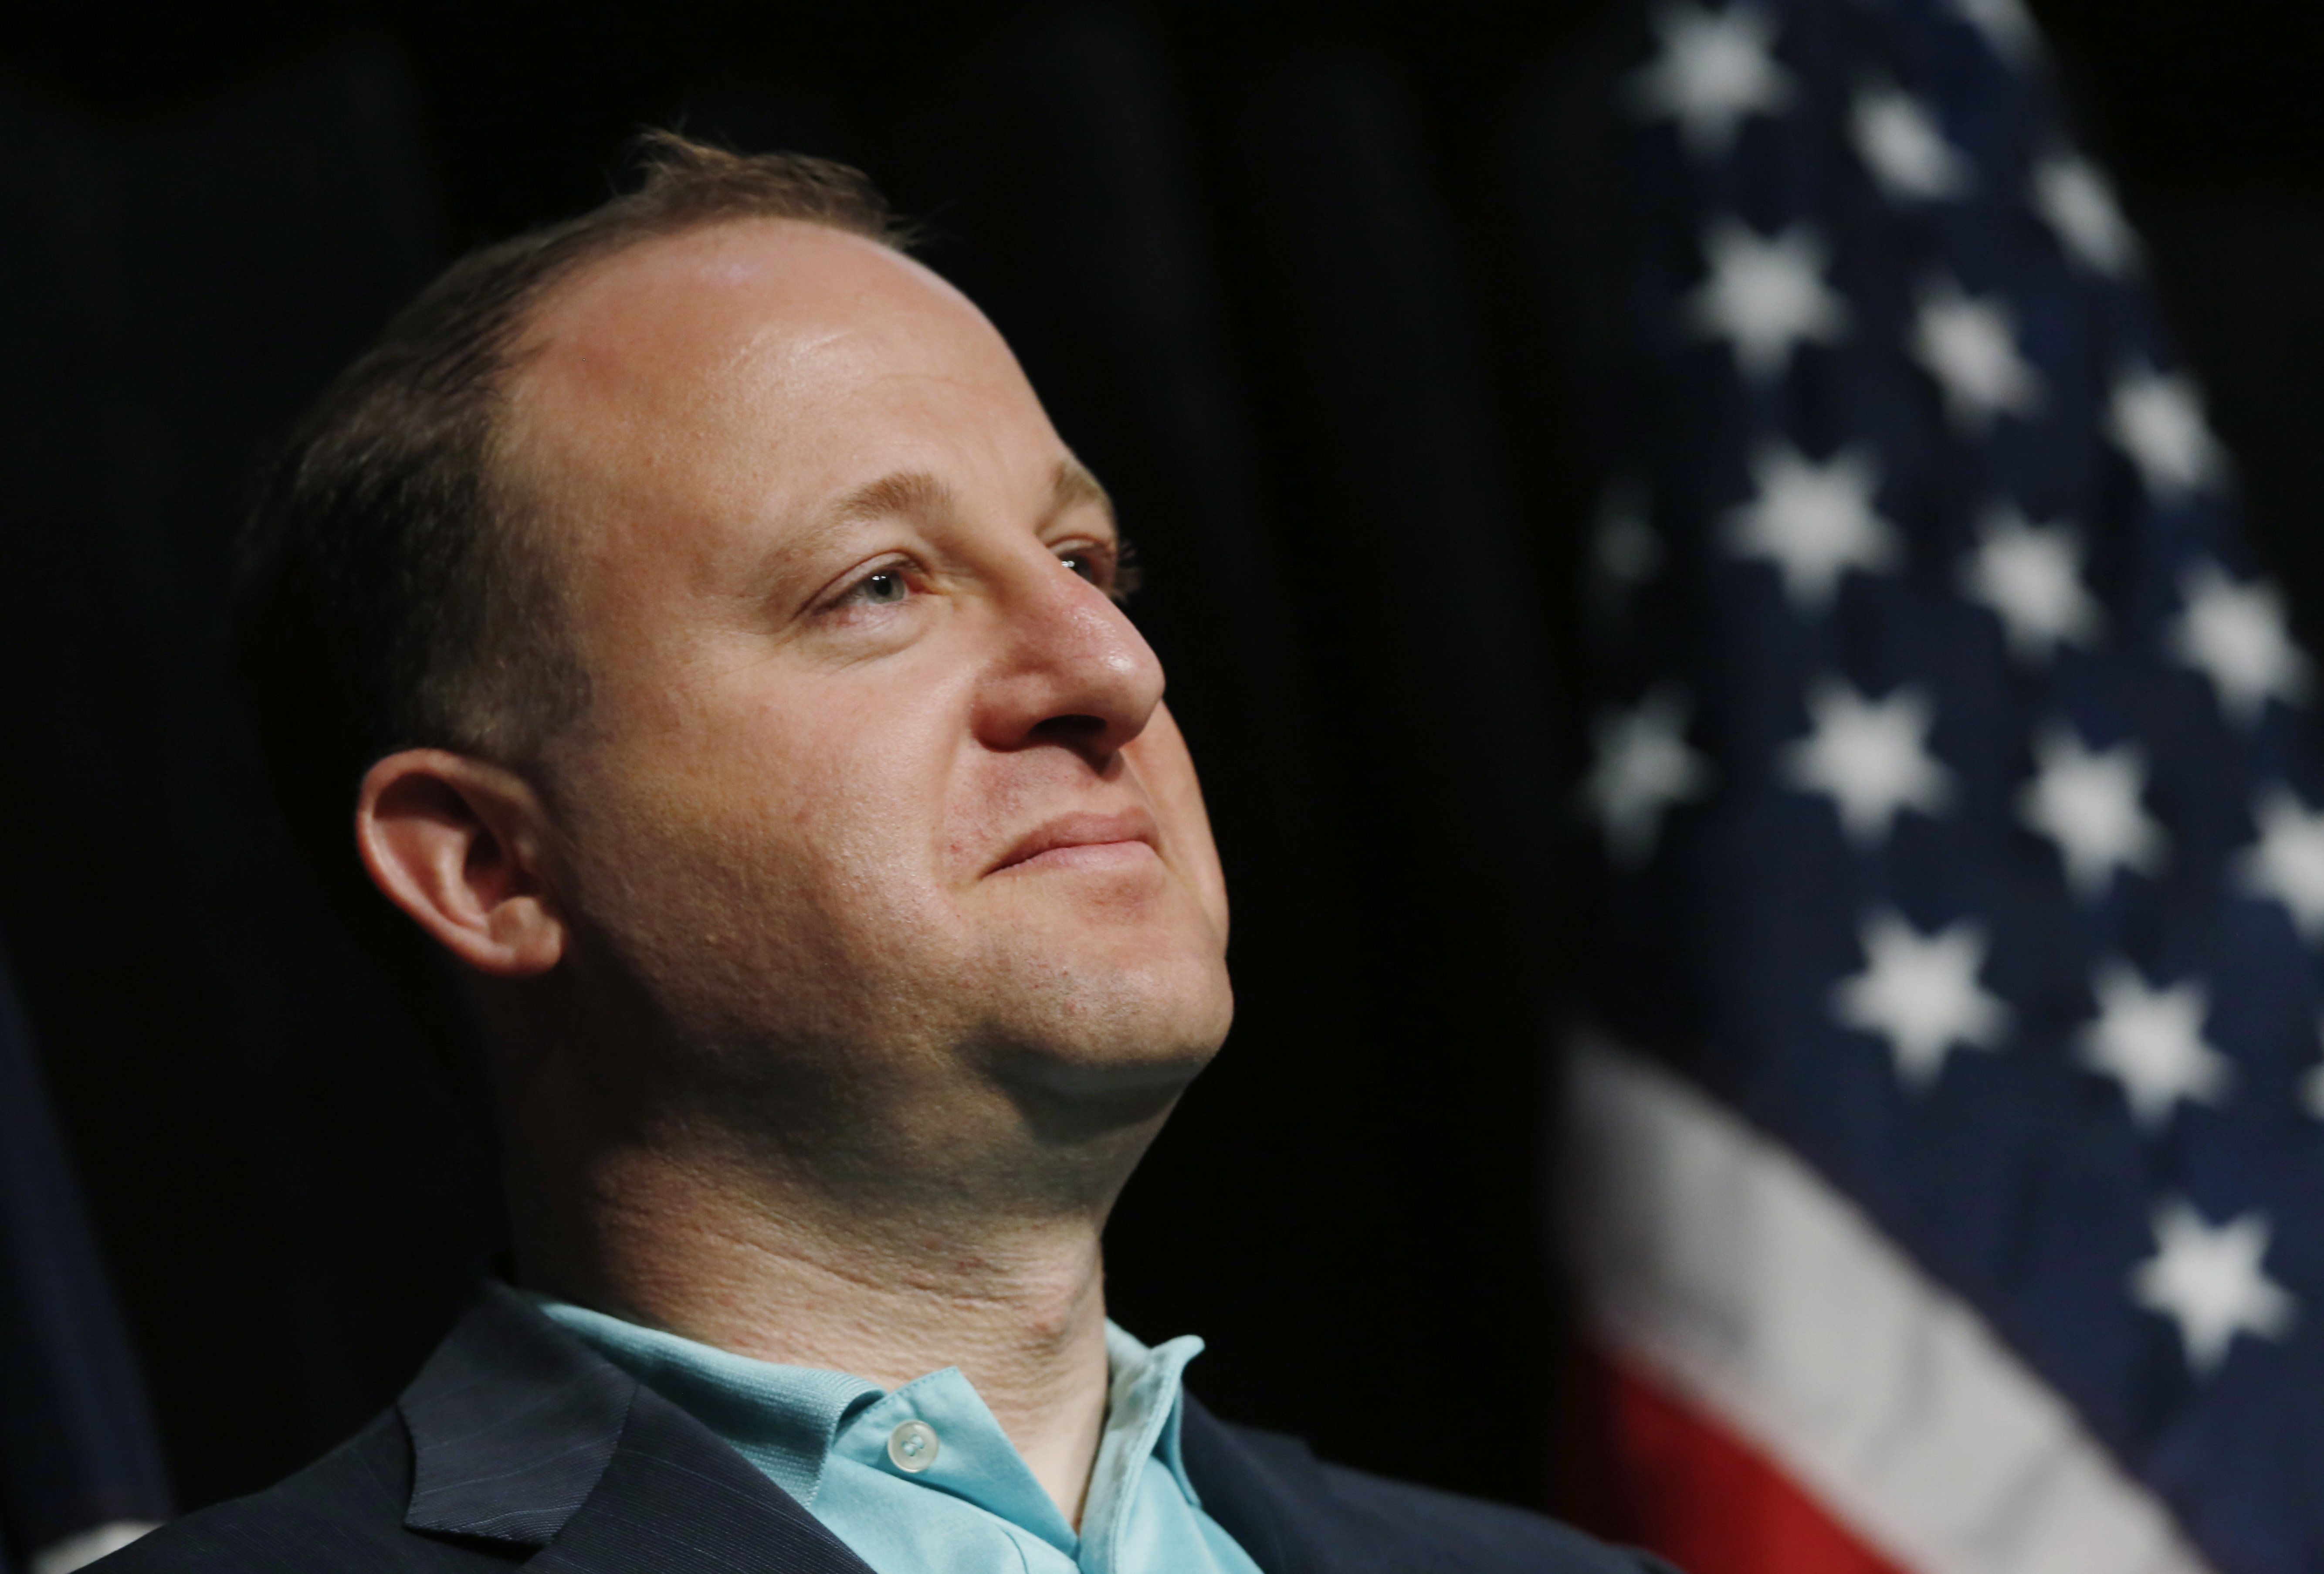 Rep. Jared Polis, D-Colo., looks on during the Colorado Democratic Party's State Assembly in Denver on April 12, 2014